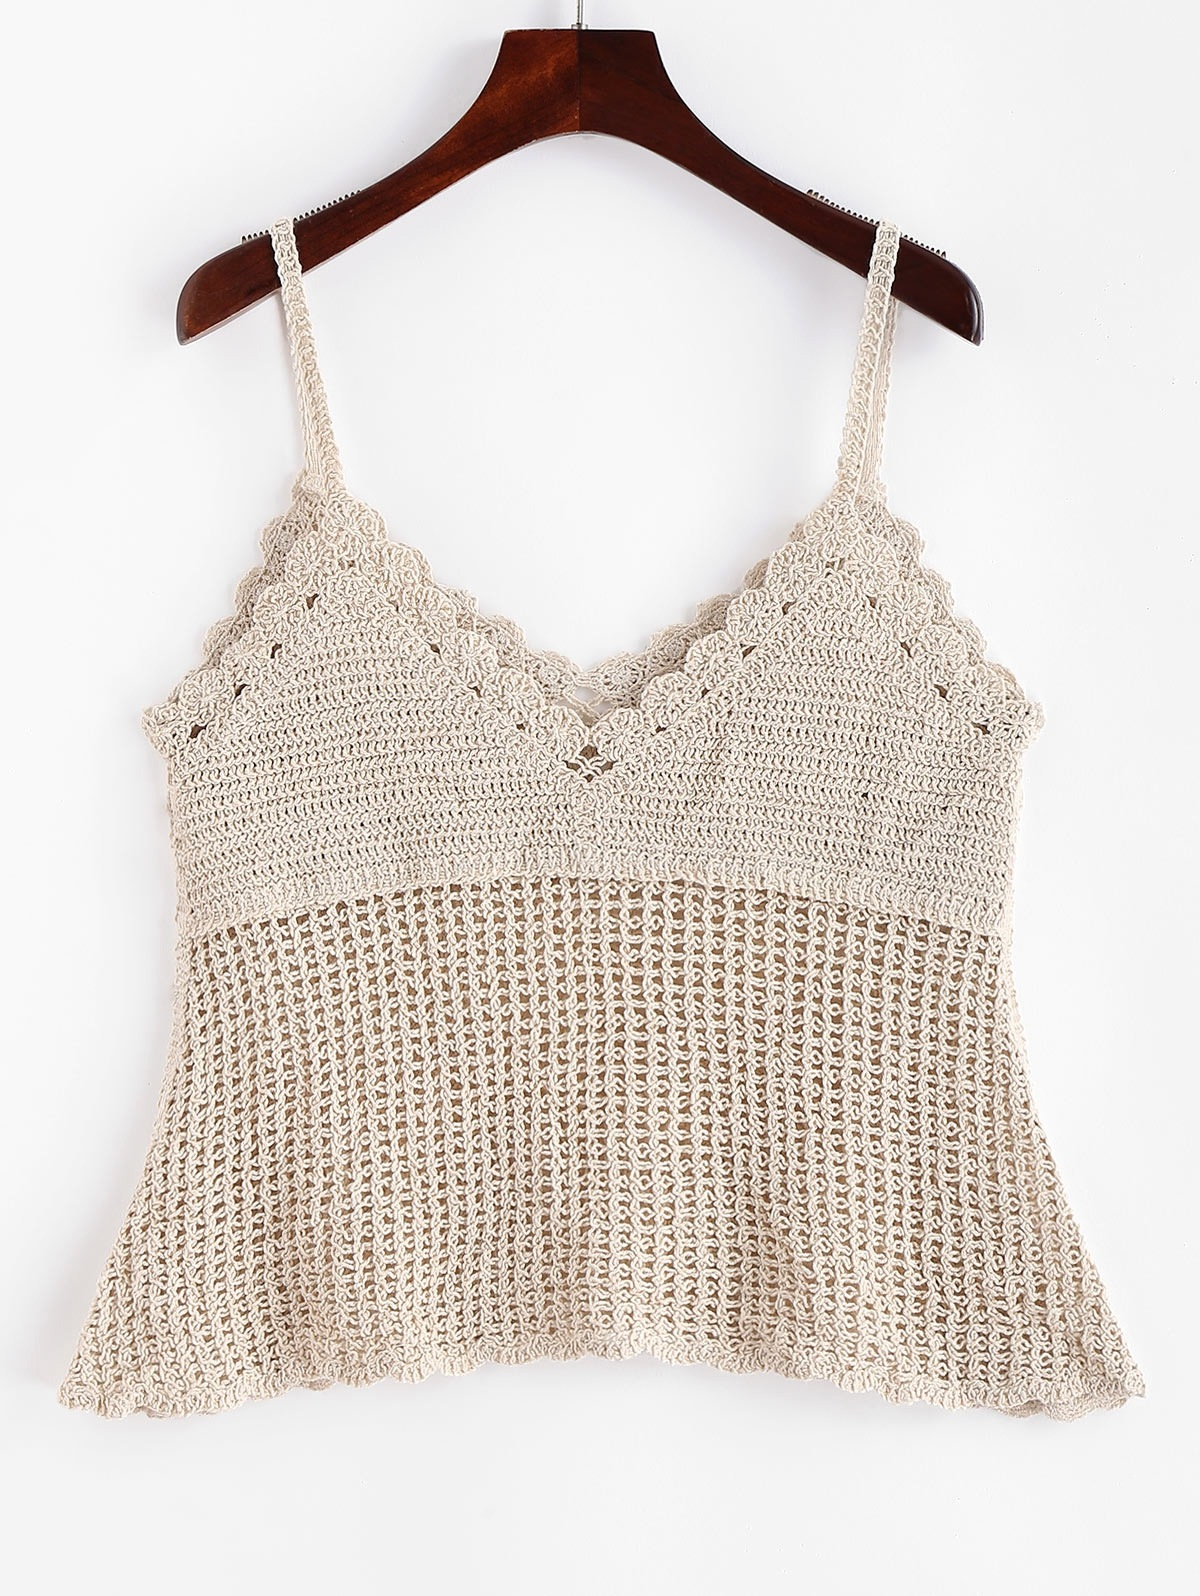 Crochet Scalloped Cover Up Top